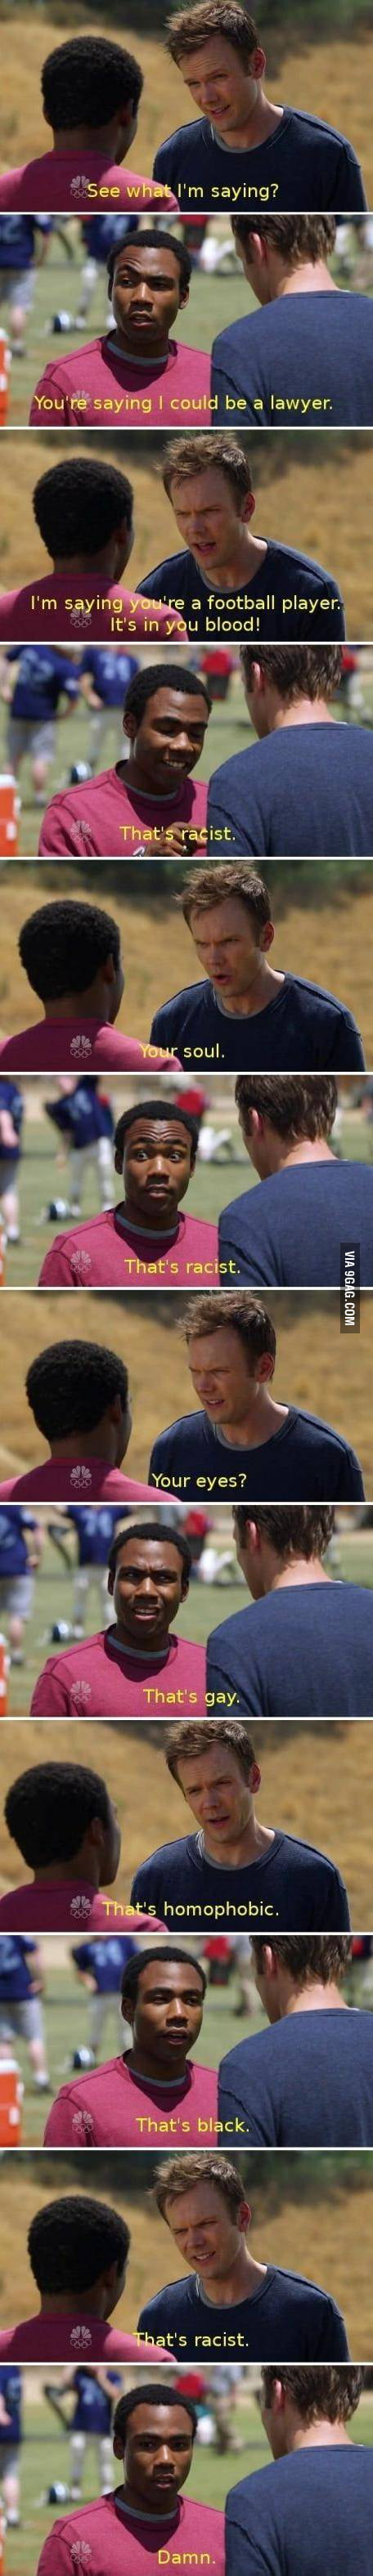 That's racist